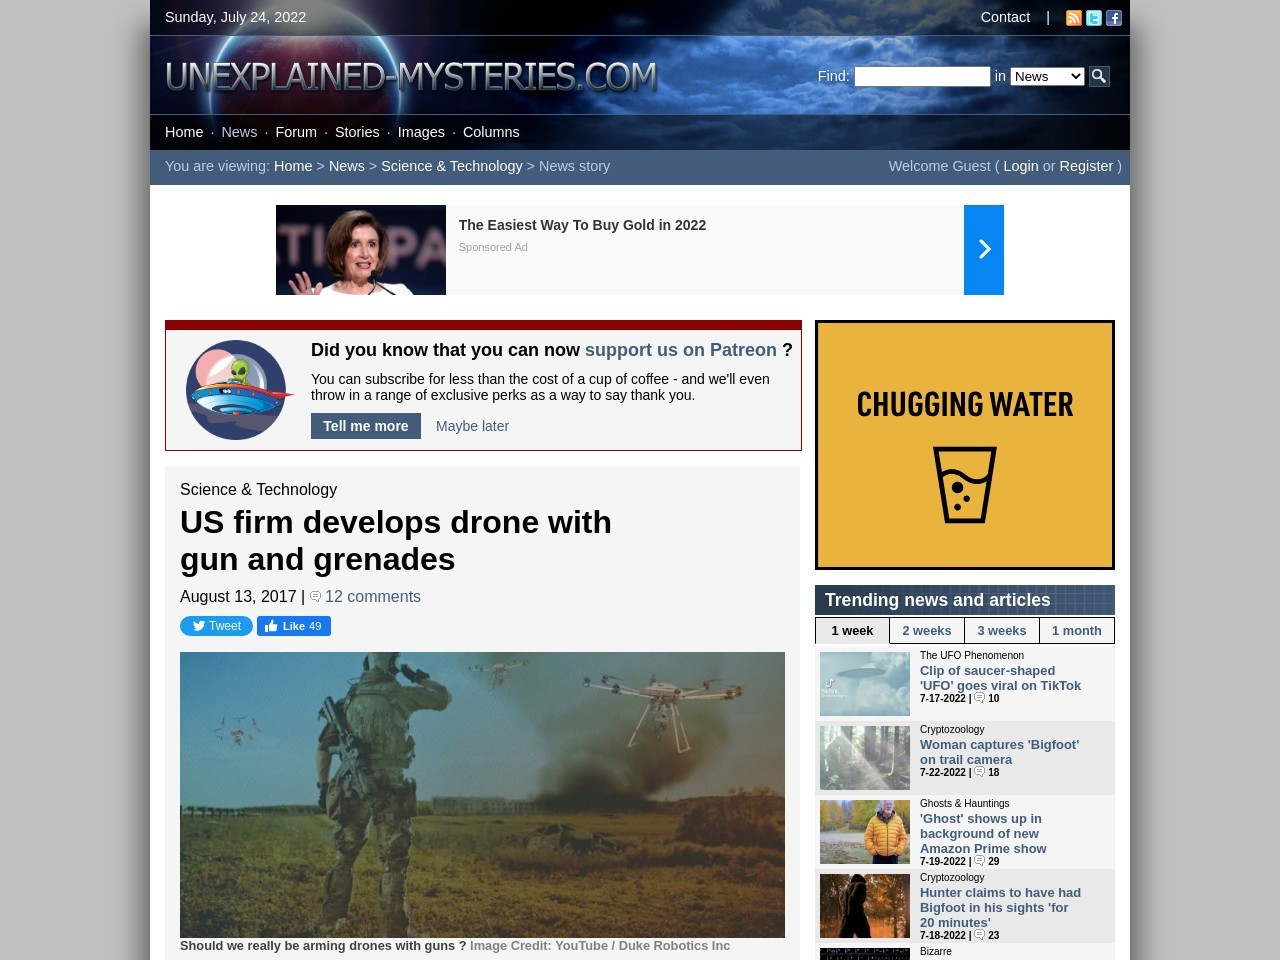 US firm develops drone with gun and grenades